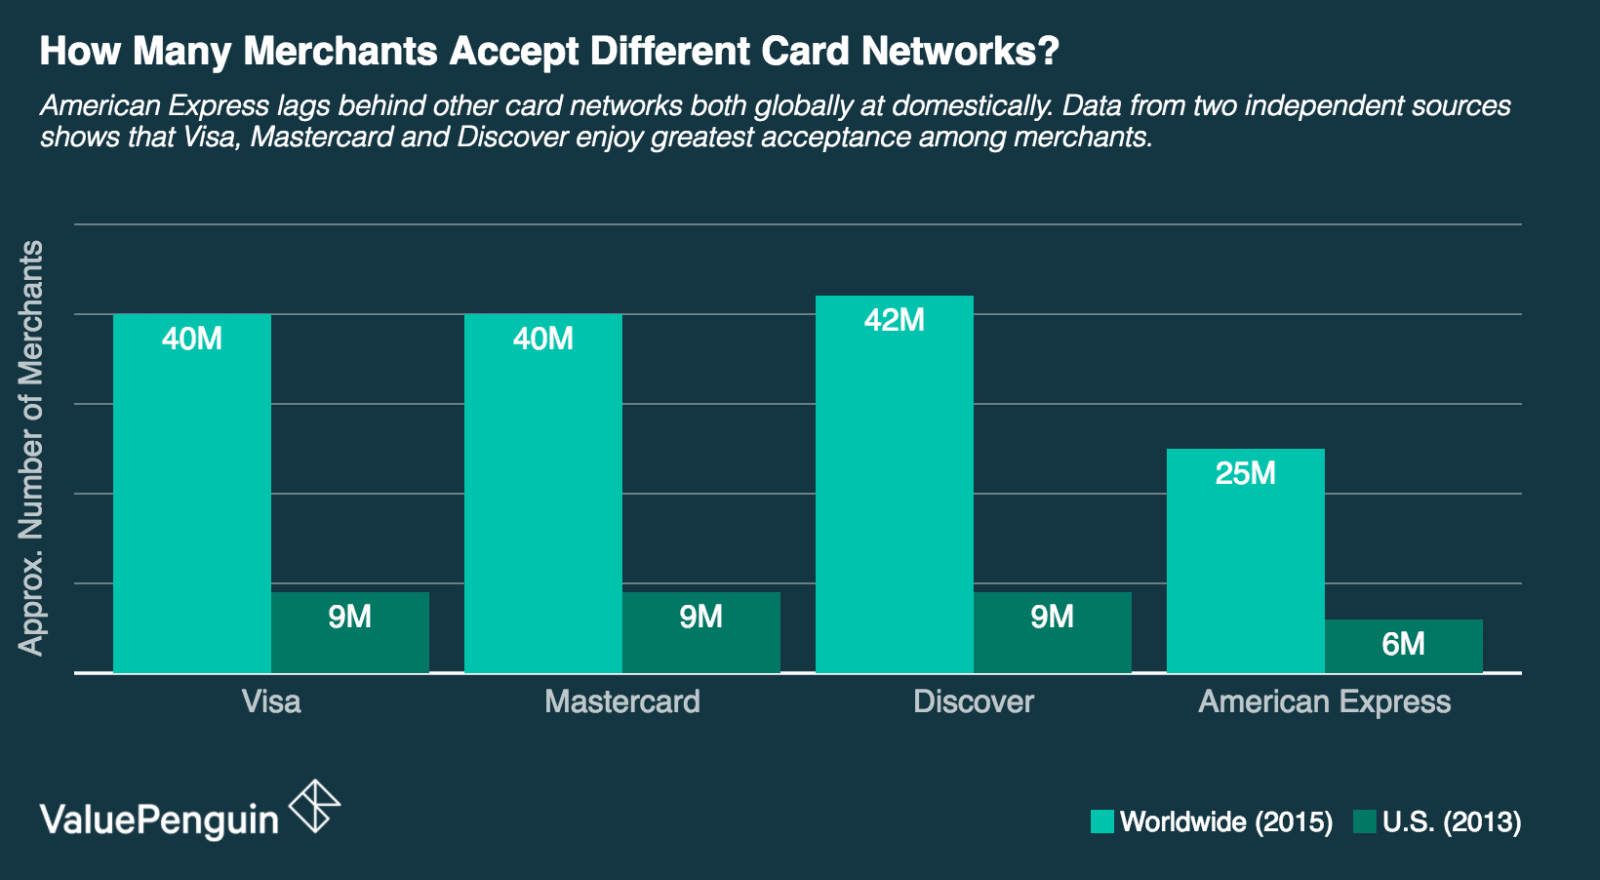 A graph showing the number of merchants that accept Visa, Mastercard, Discover, and American Express credit cards.